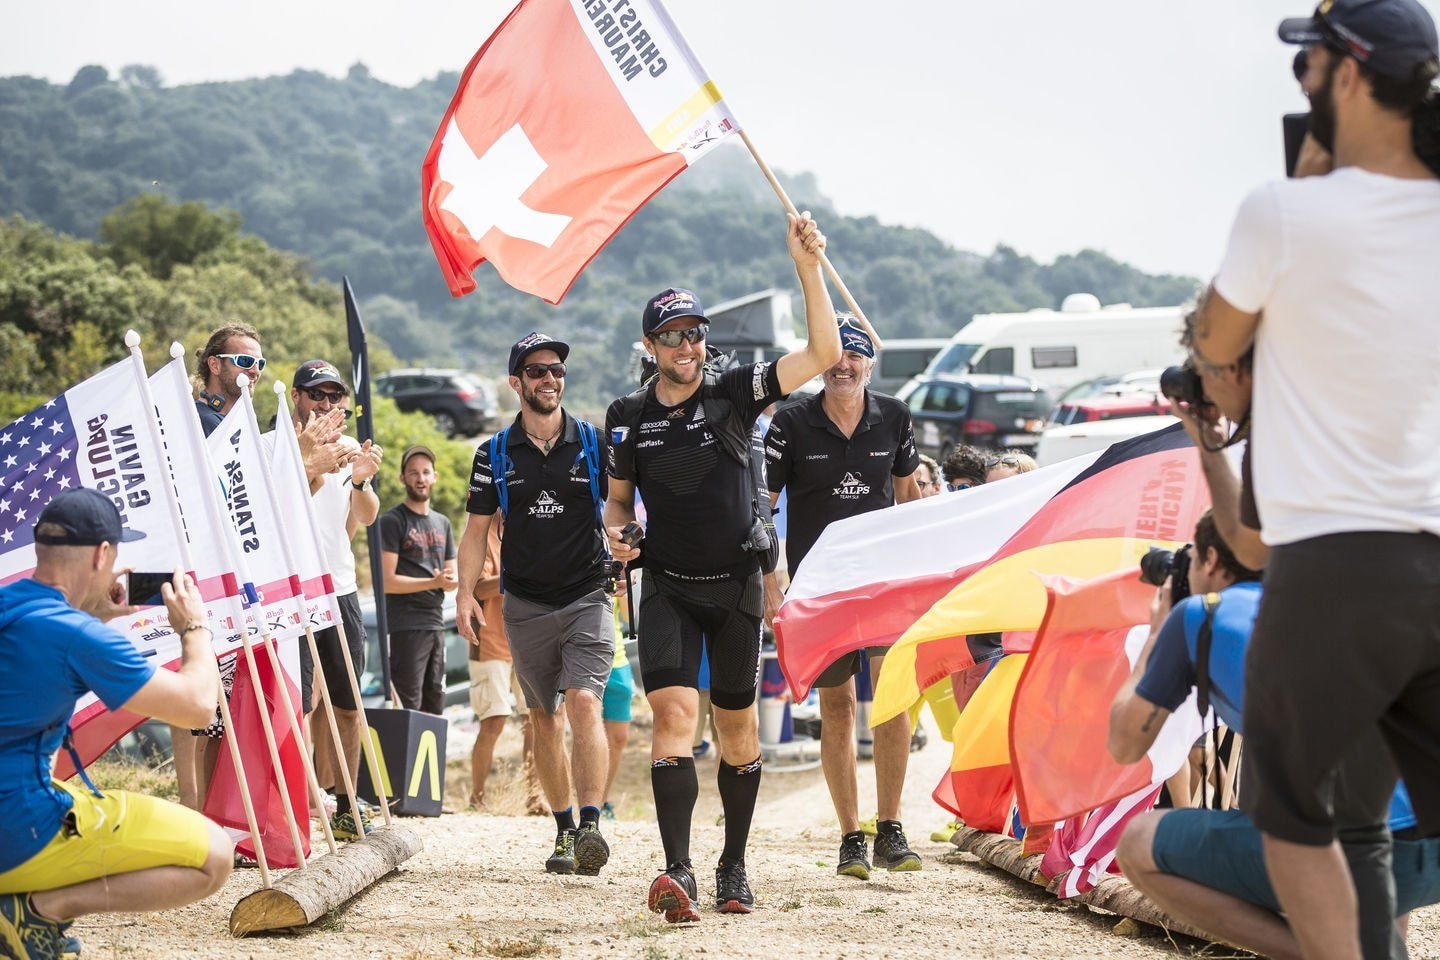 red bull xalps turnpoint13 peille